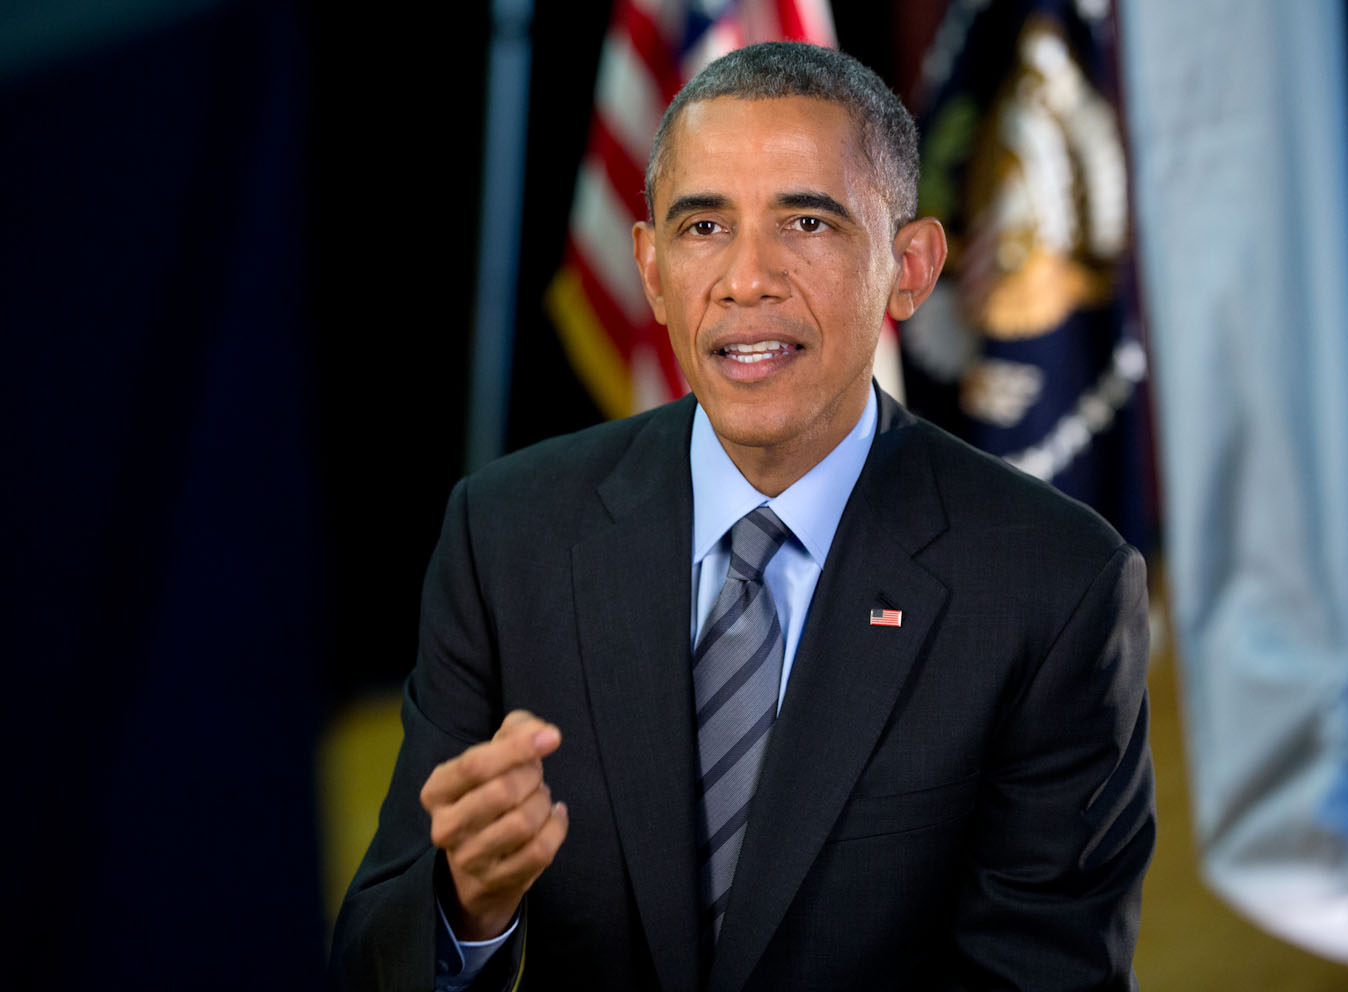 President Barack Obama tapes the Weekly Address at Del Sol High School in Las Vegas, Nev., Nov. 21, 2014.